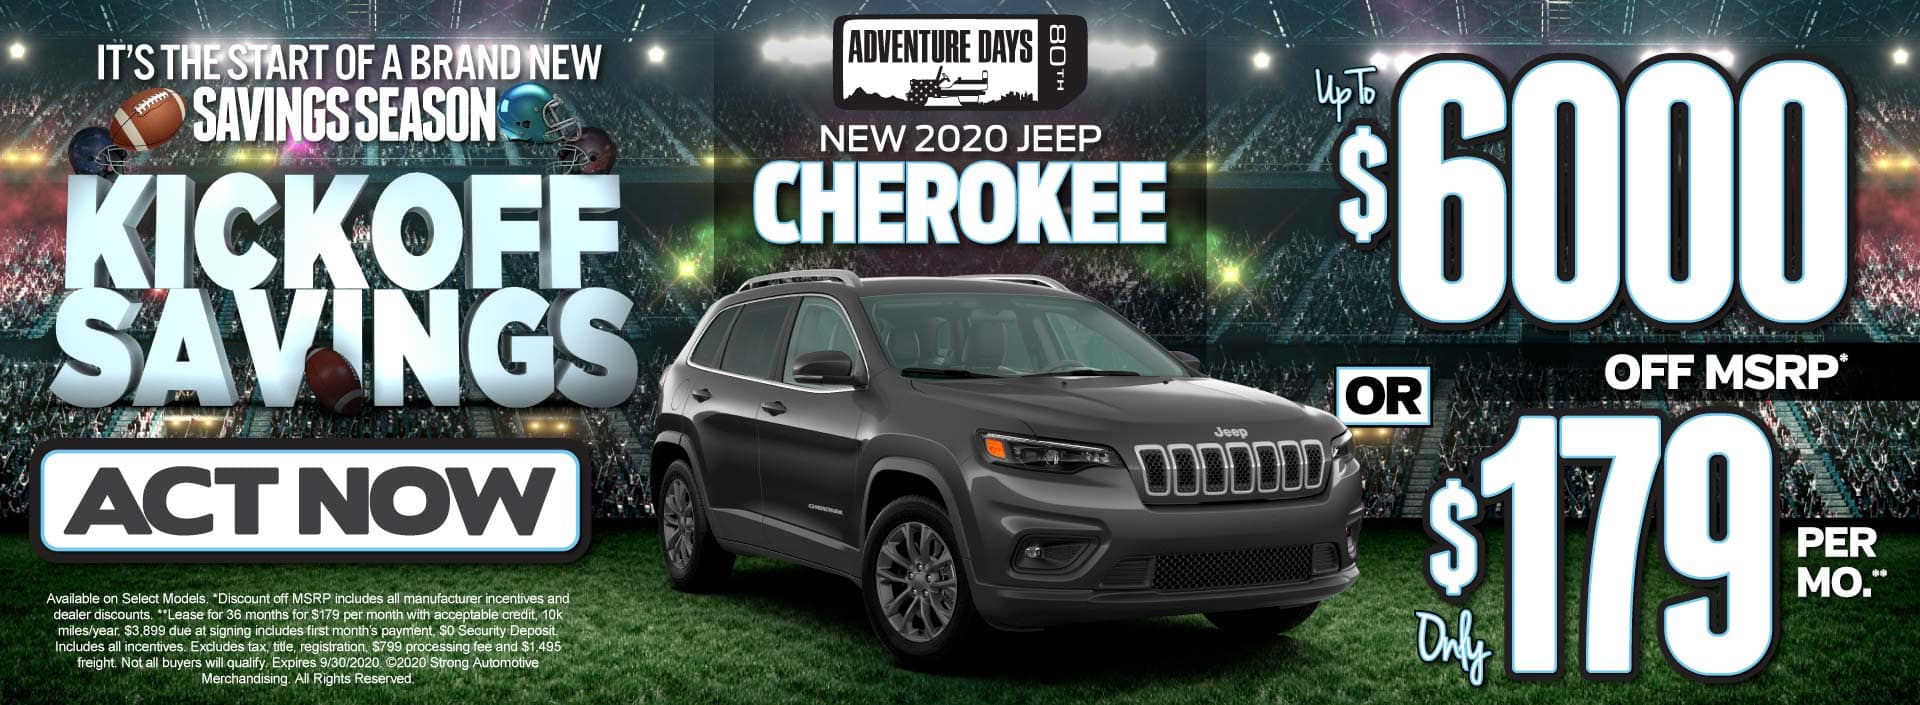 New 2020 Jeep Cherokee up to $6000 Off MSRP - ACT NOW